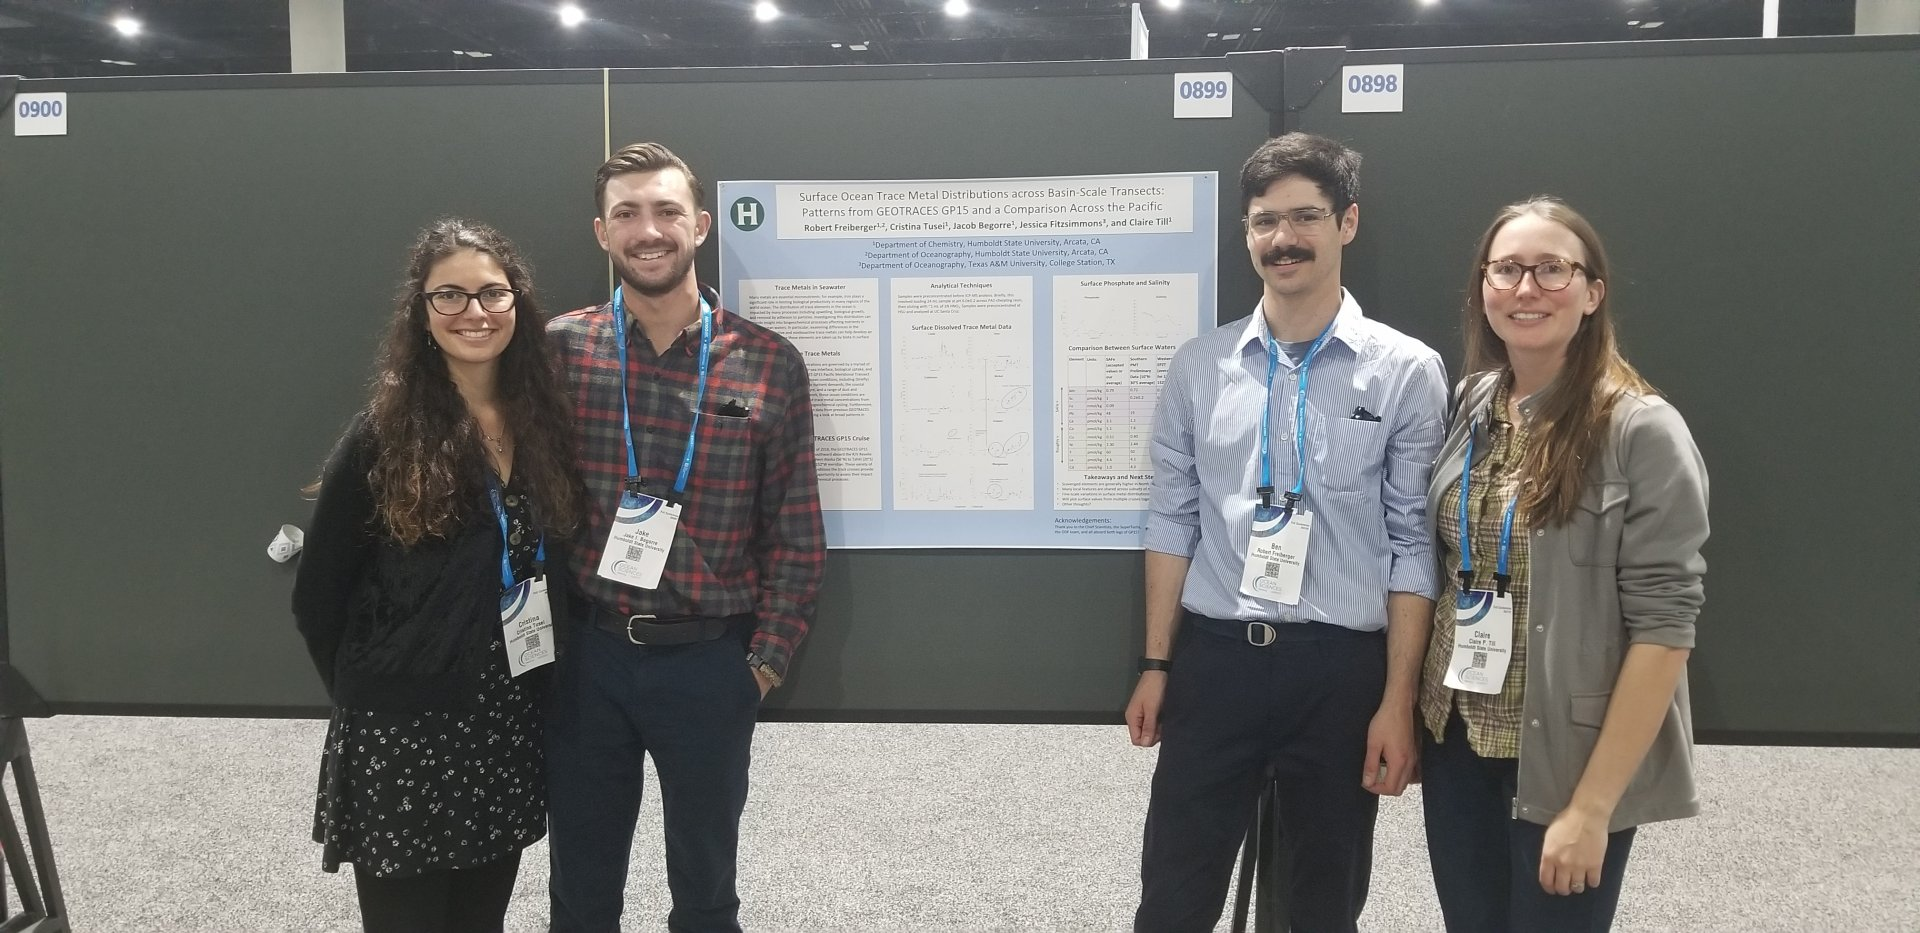 Professor Claire Till with Ben Freiberger, Jacob Begorre and Cristina Tusei in front of their poster at the Ocean Sciences Meeting in San Diego. | Photo courtesy of Claire Till